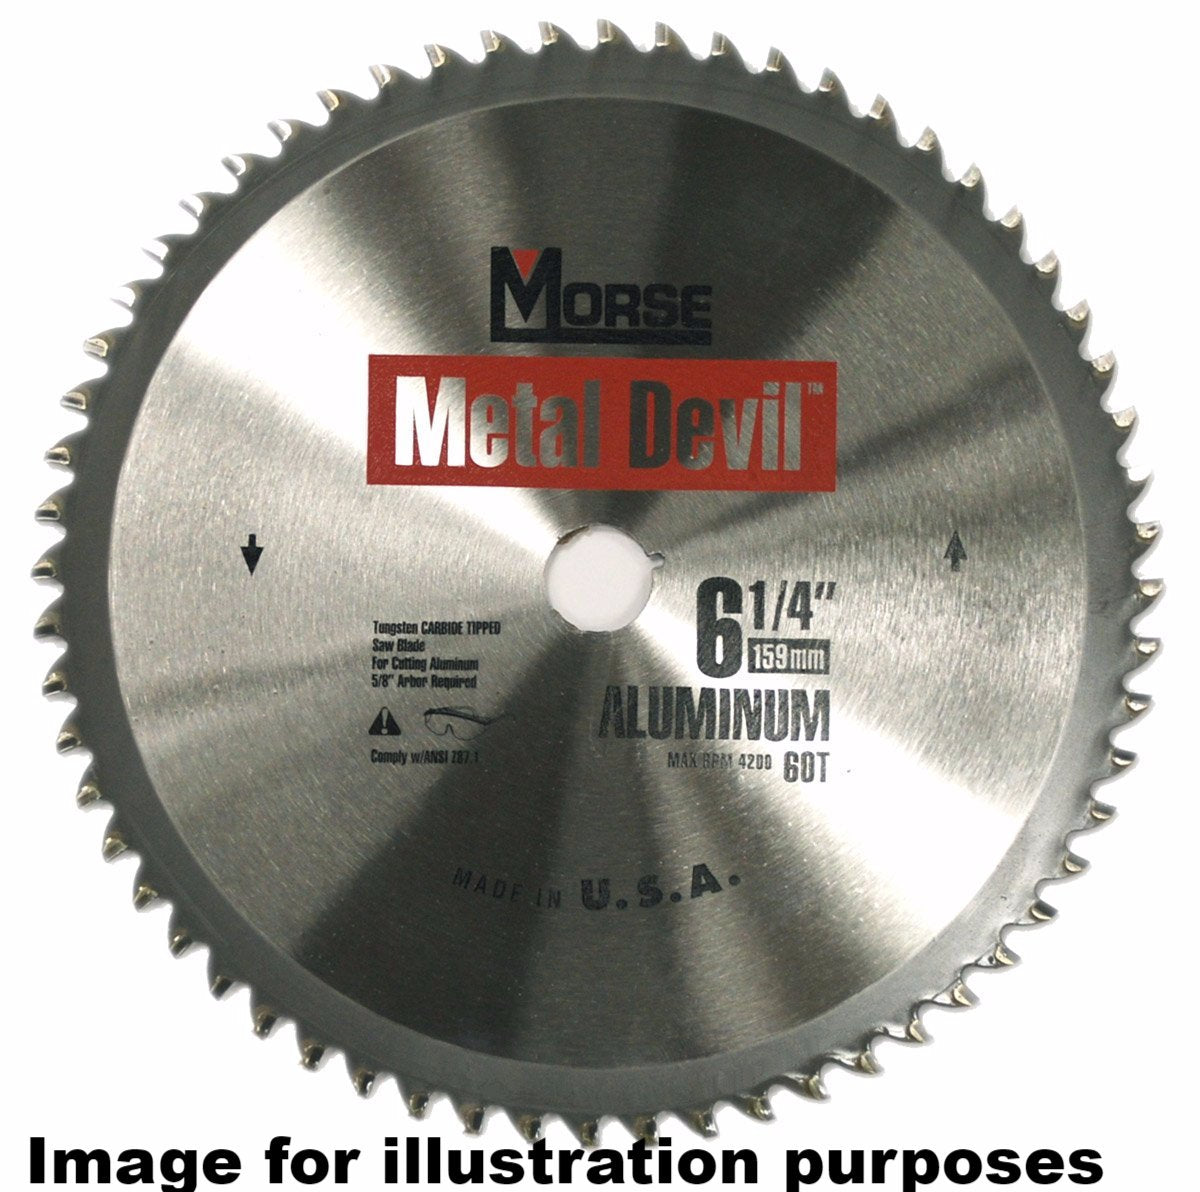 159mm (48 Tooth) Steel Cutting Metal Devil TCT Circular Saw Blade